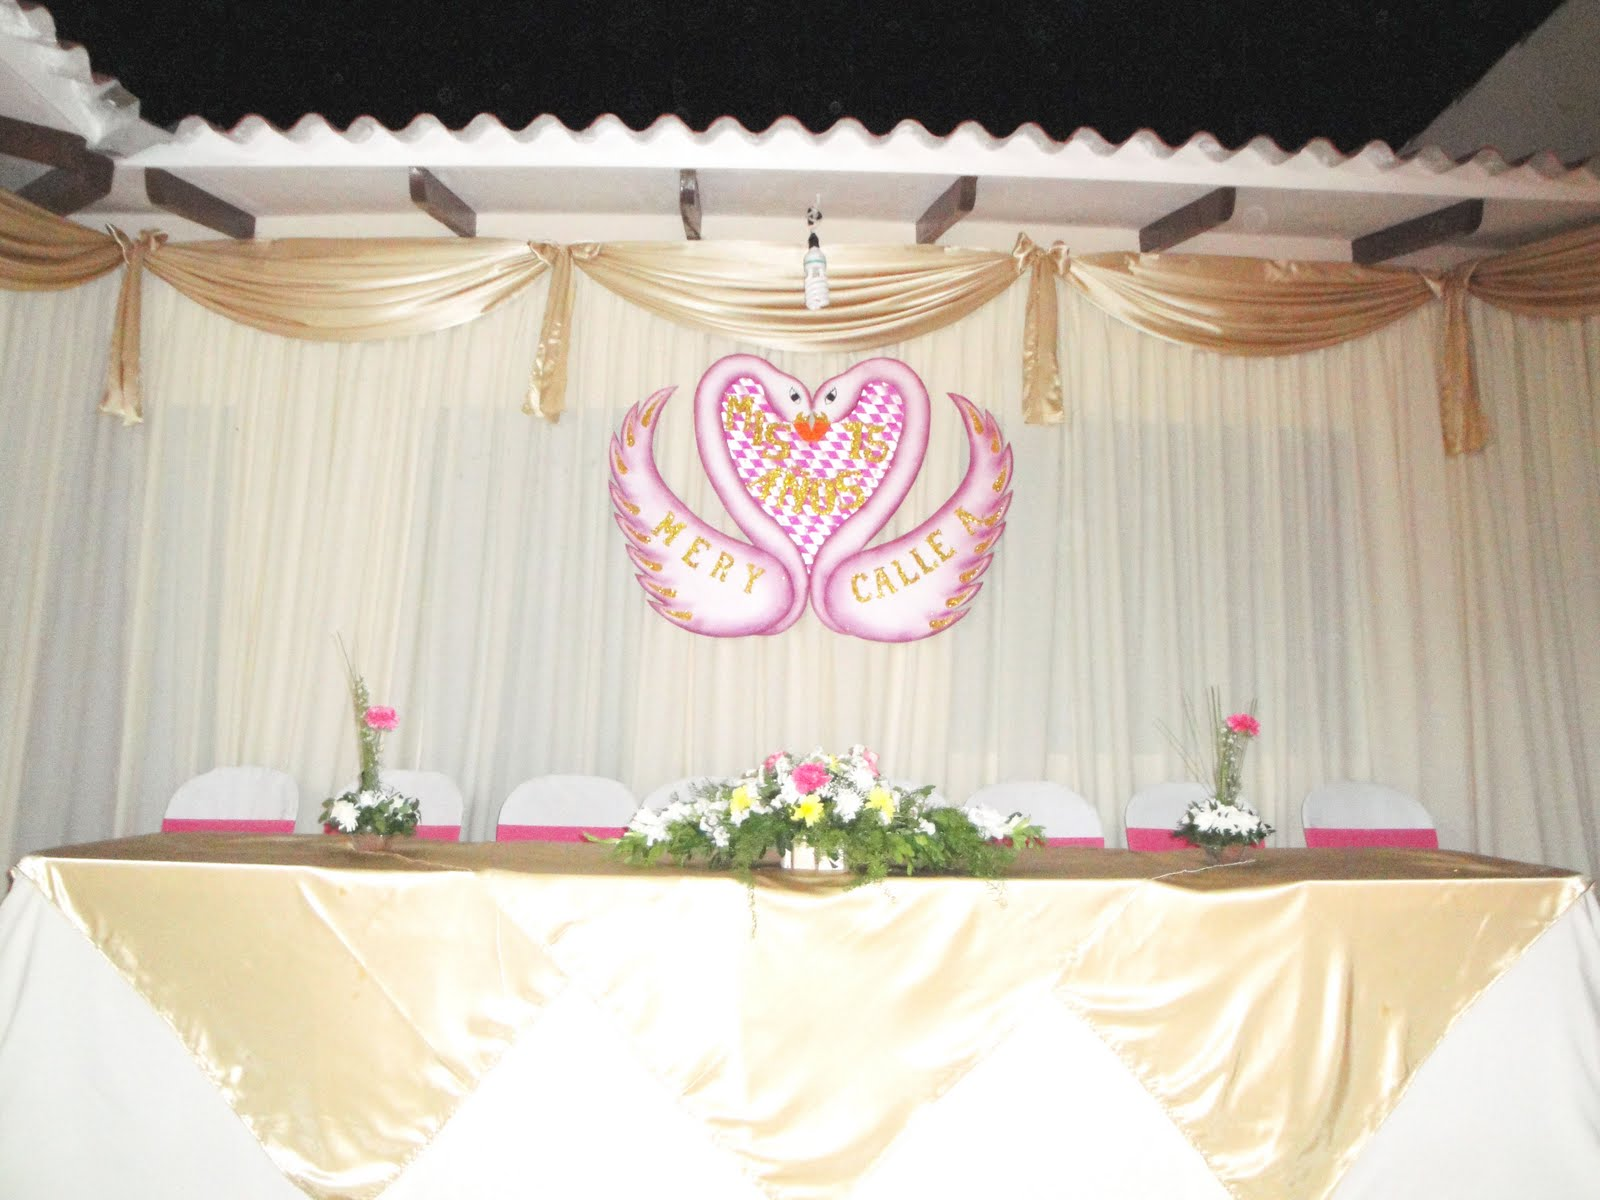 Como Decorar Un Local Para Matrimonio Creatividad Eventos Sociales Decoración De 15 Años